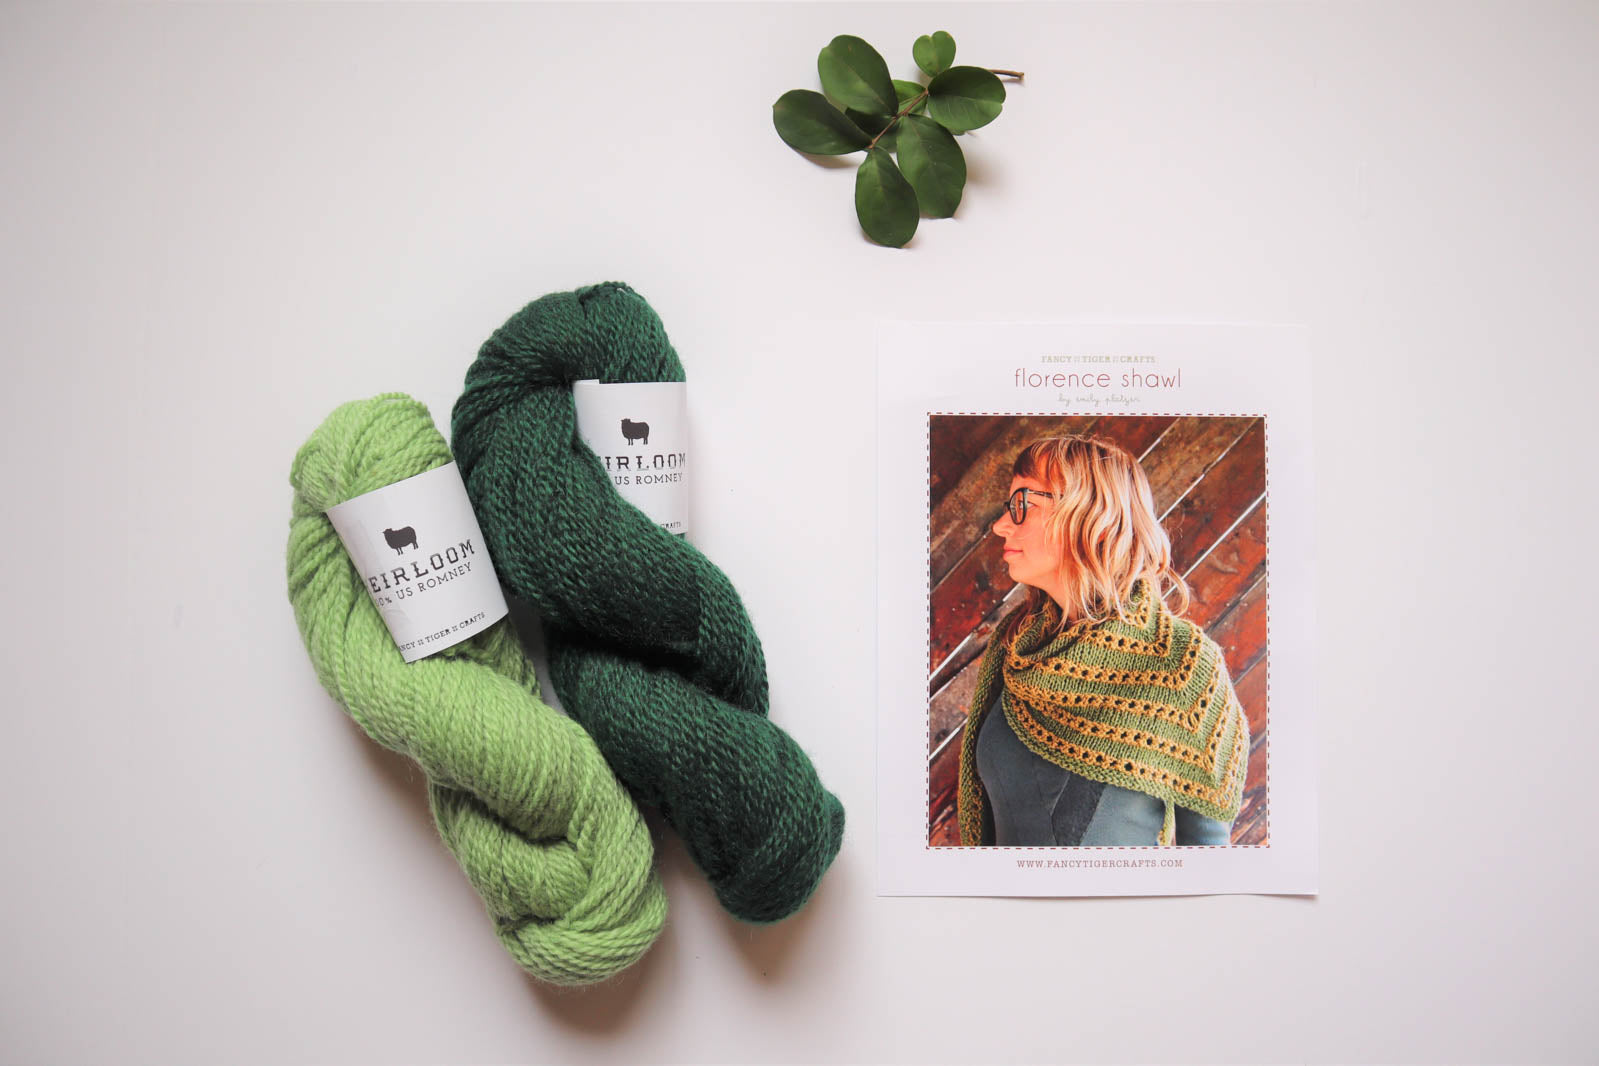 Lay flat photo of two skeins of yarn in light green and spruce, knitting pattern and green foliage.